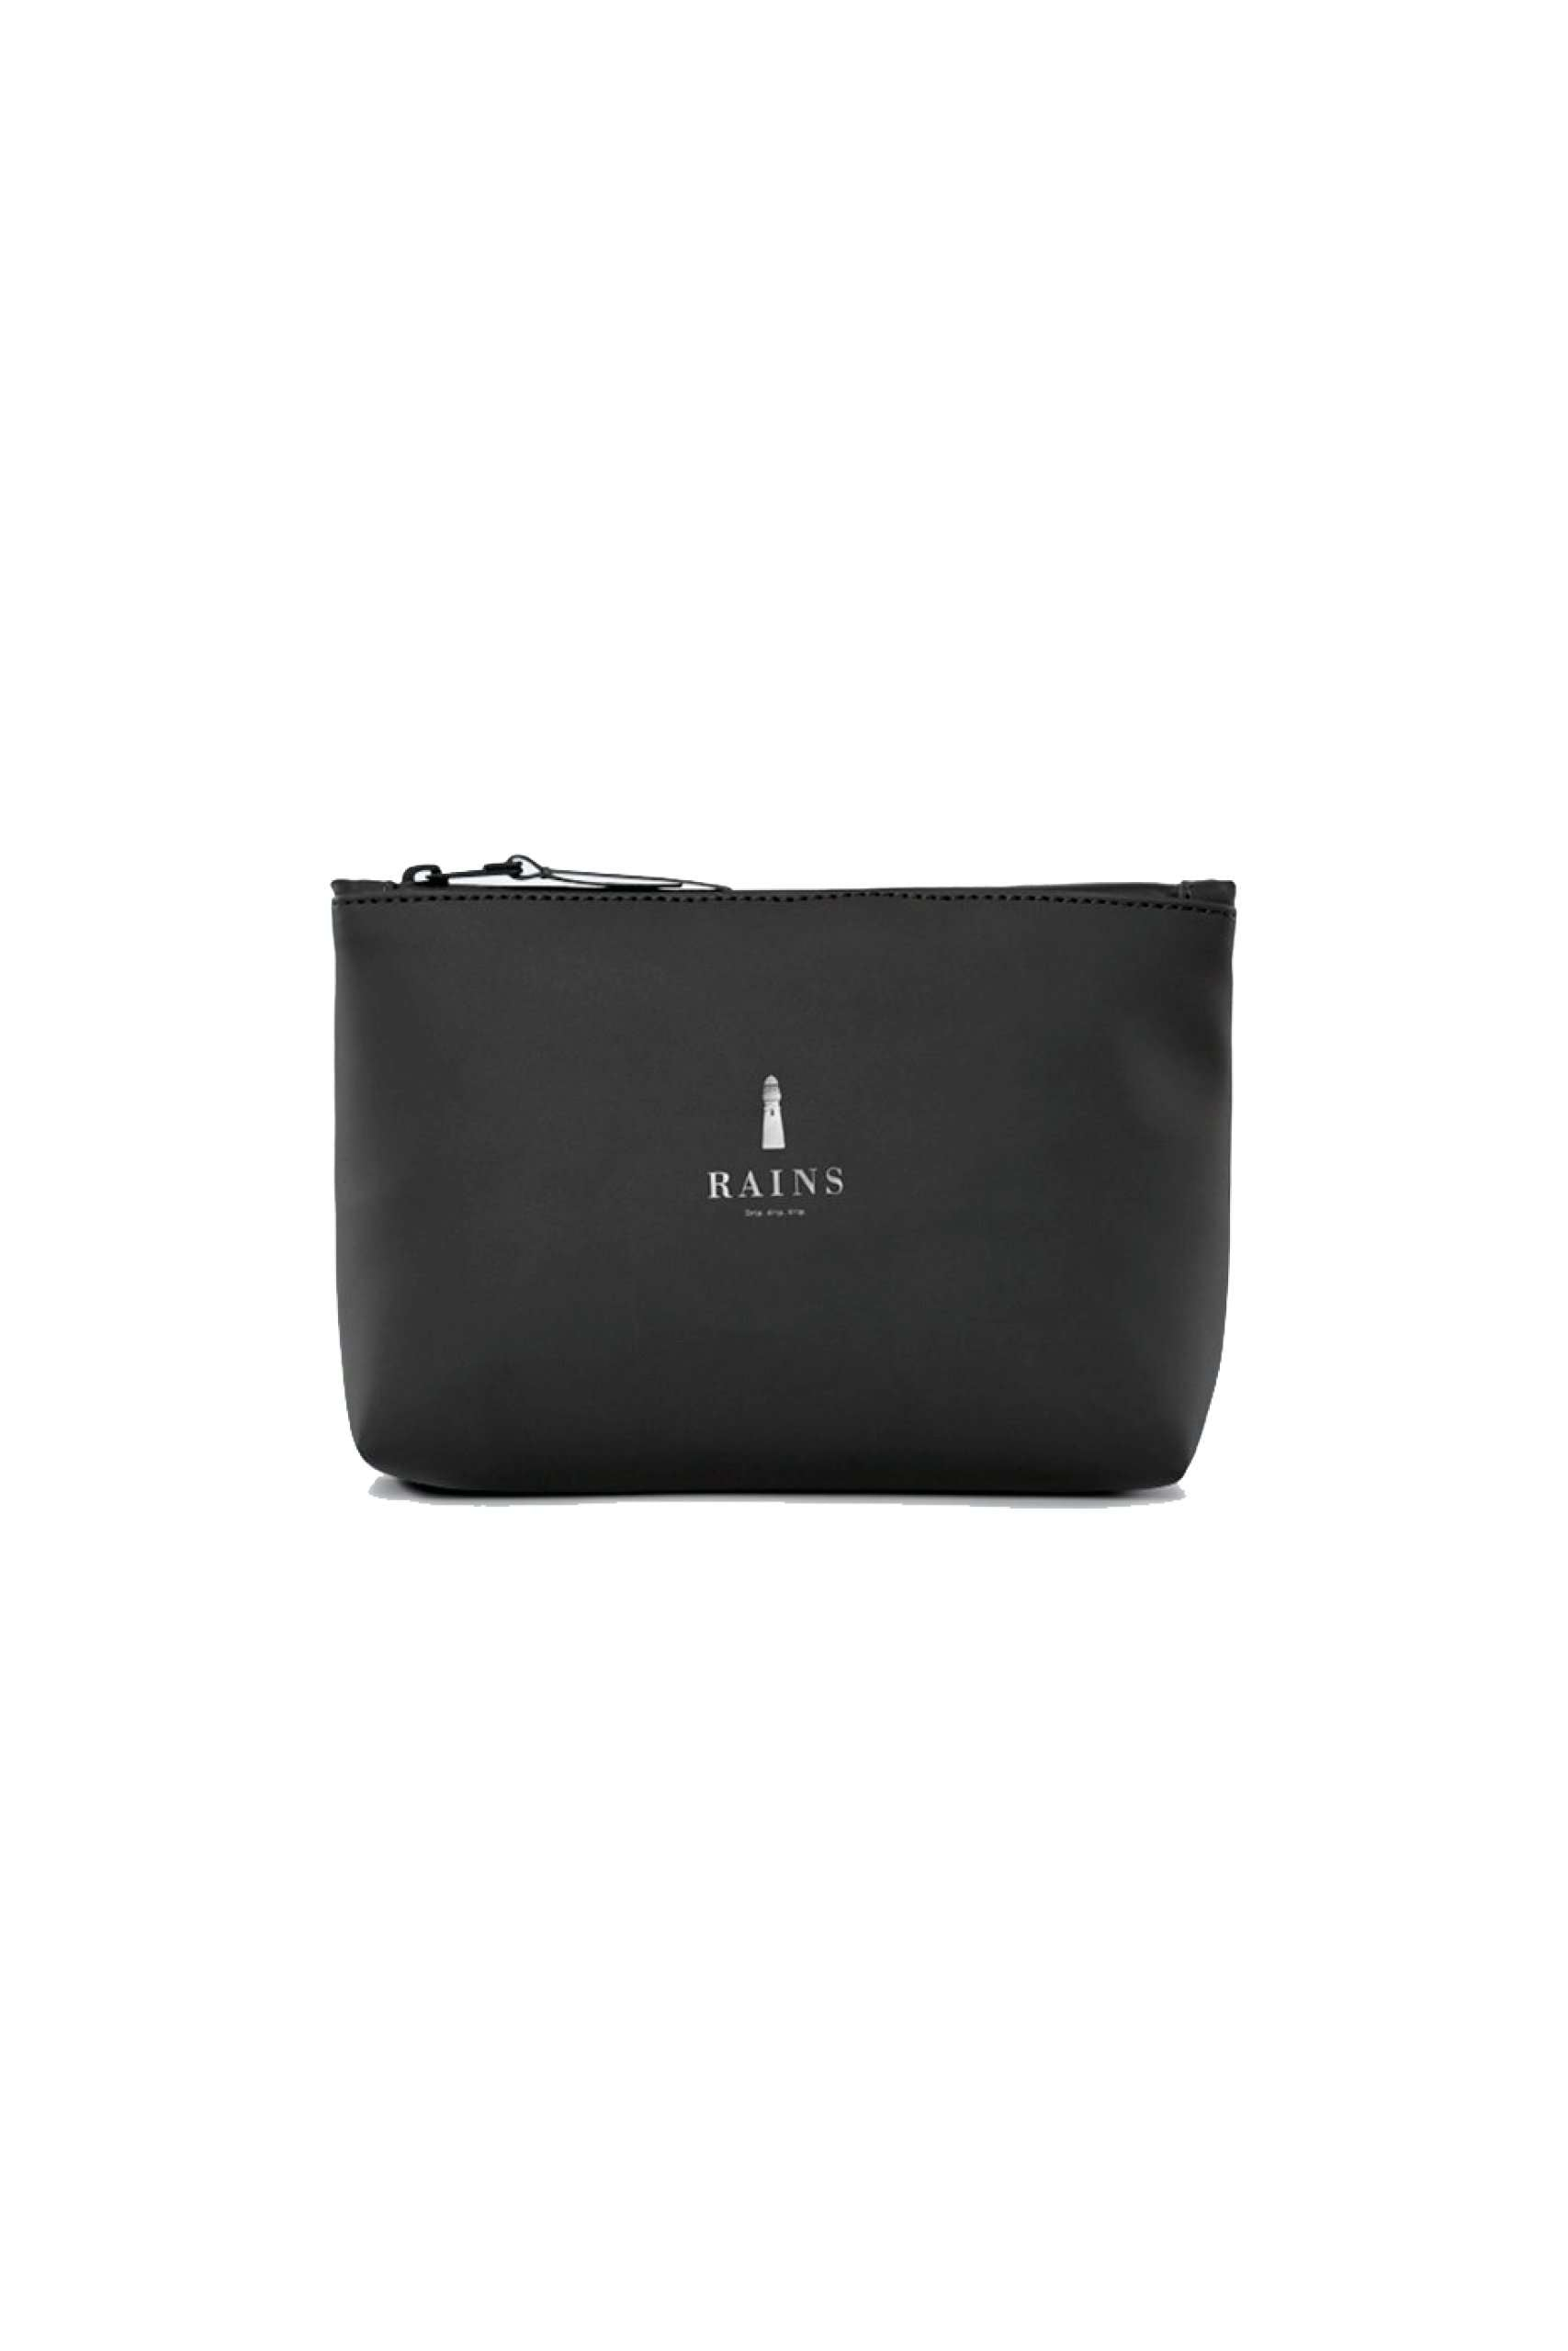 Billede af Cosmetic Bag - Black - Rains - Sort One Size